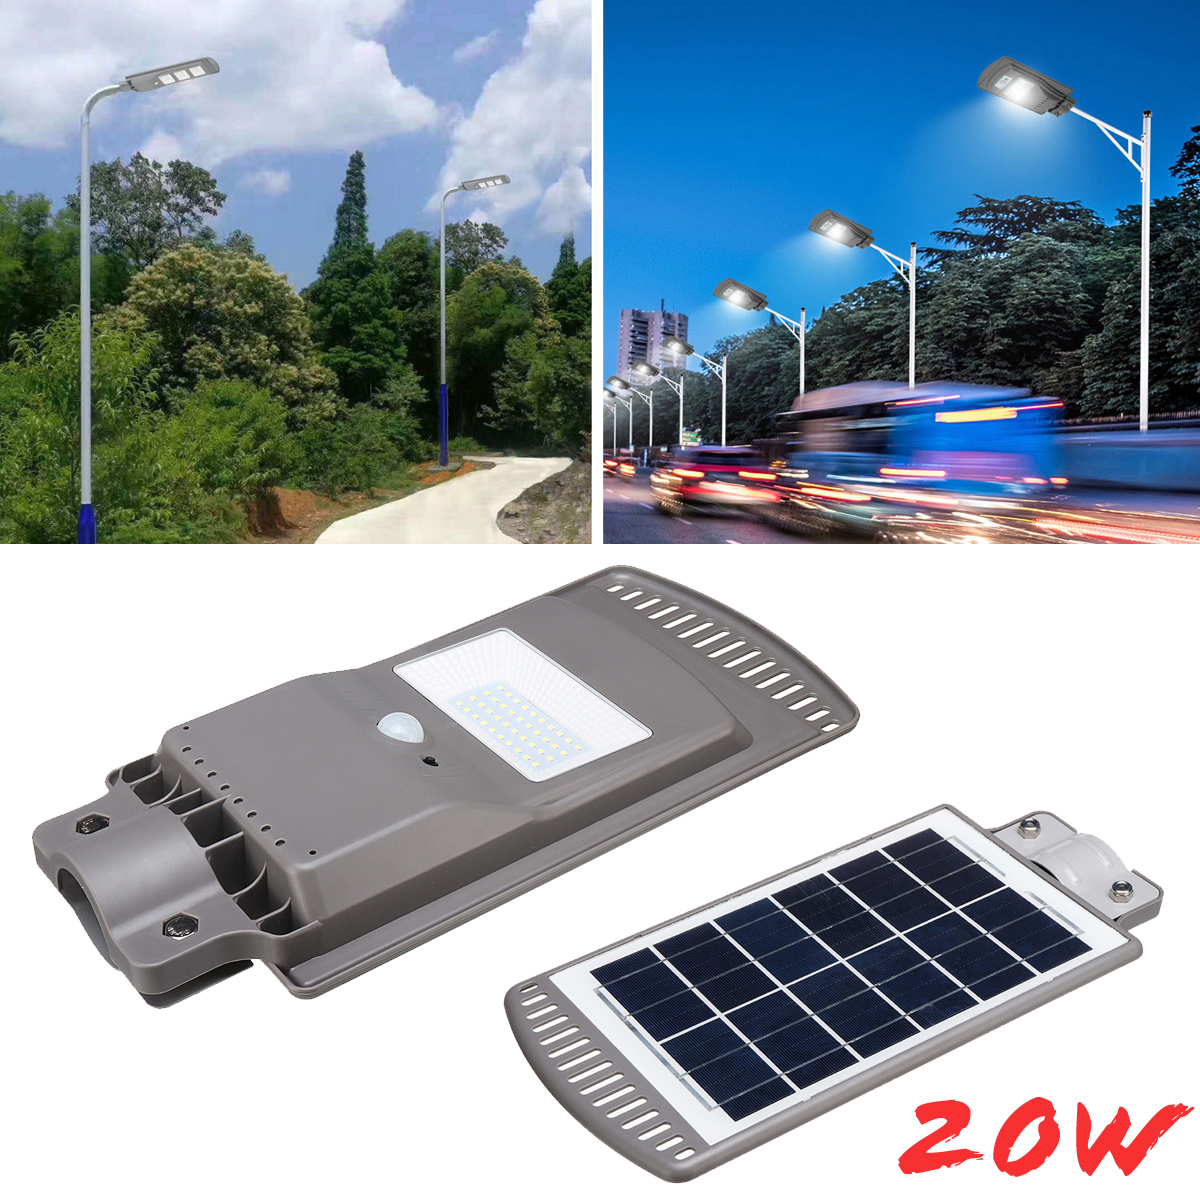 Waterproof IP67 20W Solar Panel LED Solar Street Light All-in-1 Intelligent Time Switch Wall Lighting Lamp for Outdoor Garden high lumen 60w all in one solar street light south africa for commerical lighting residential lighting